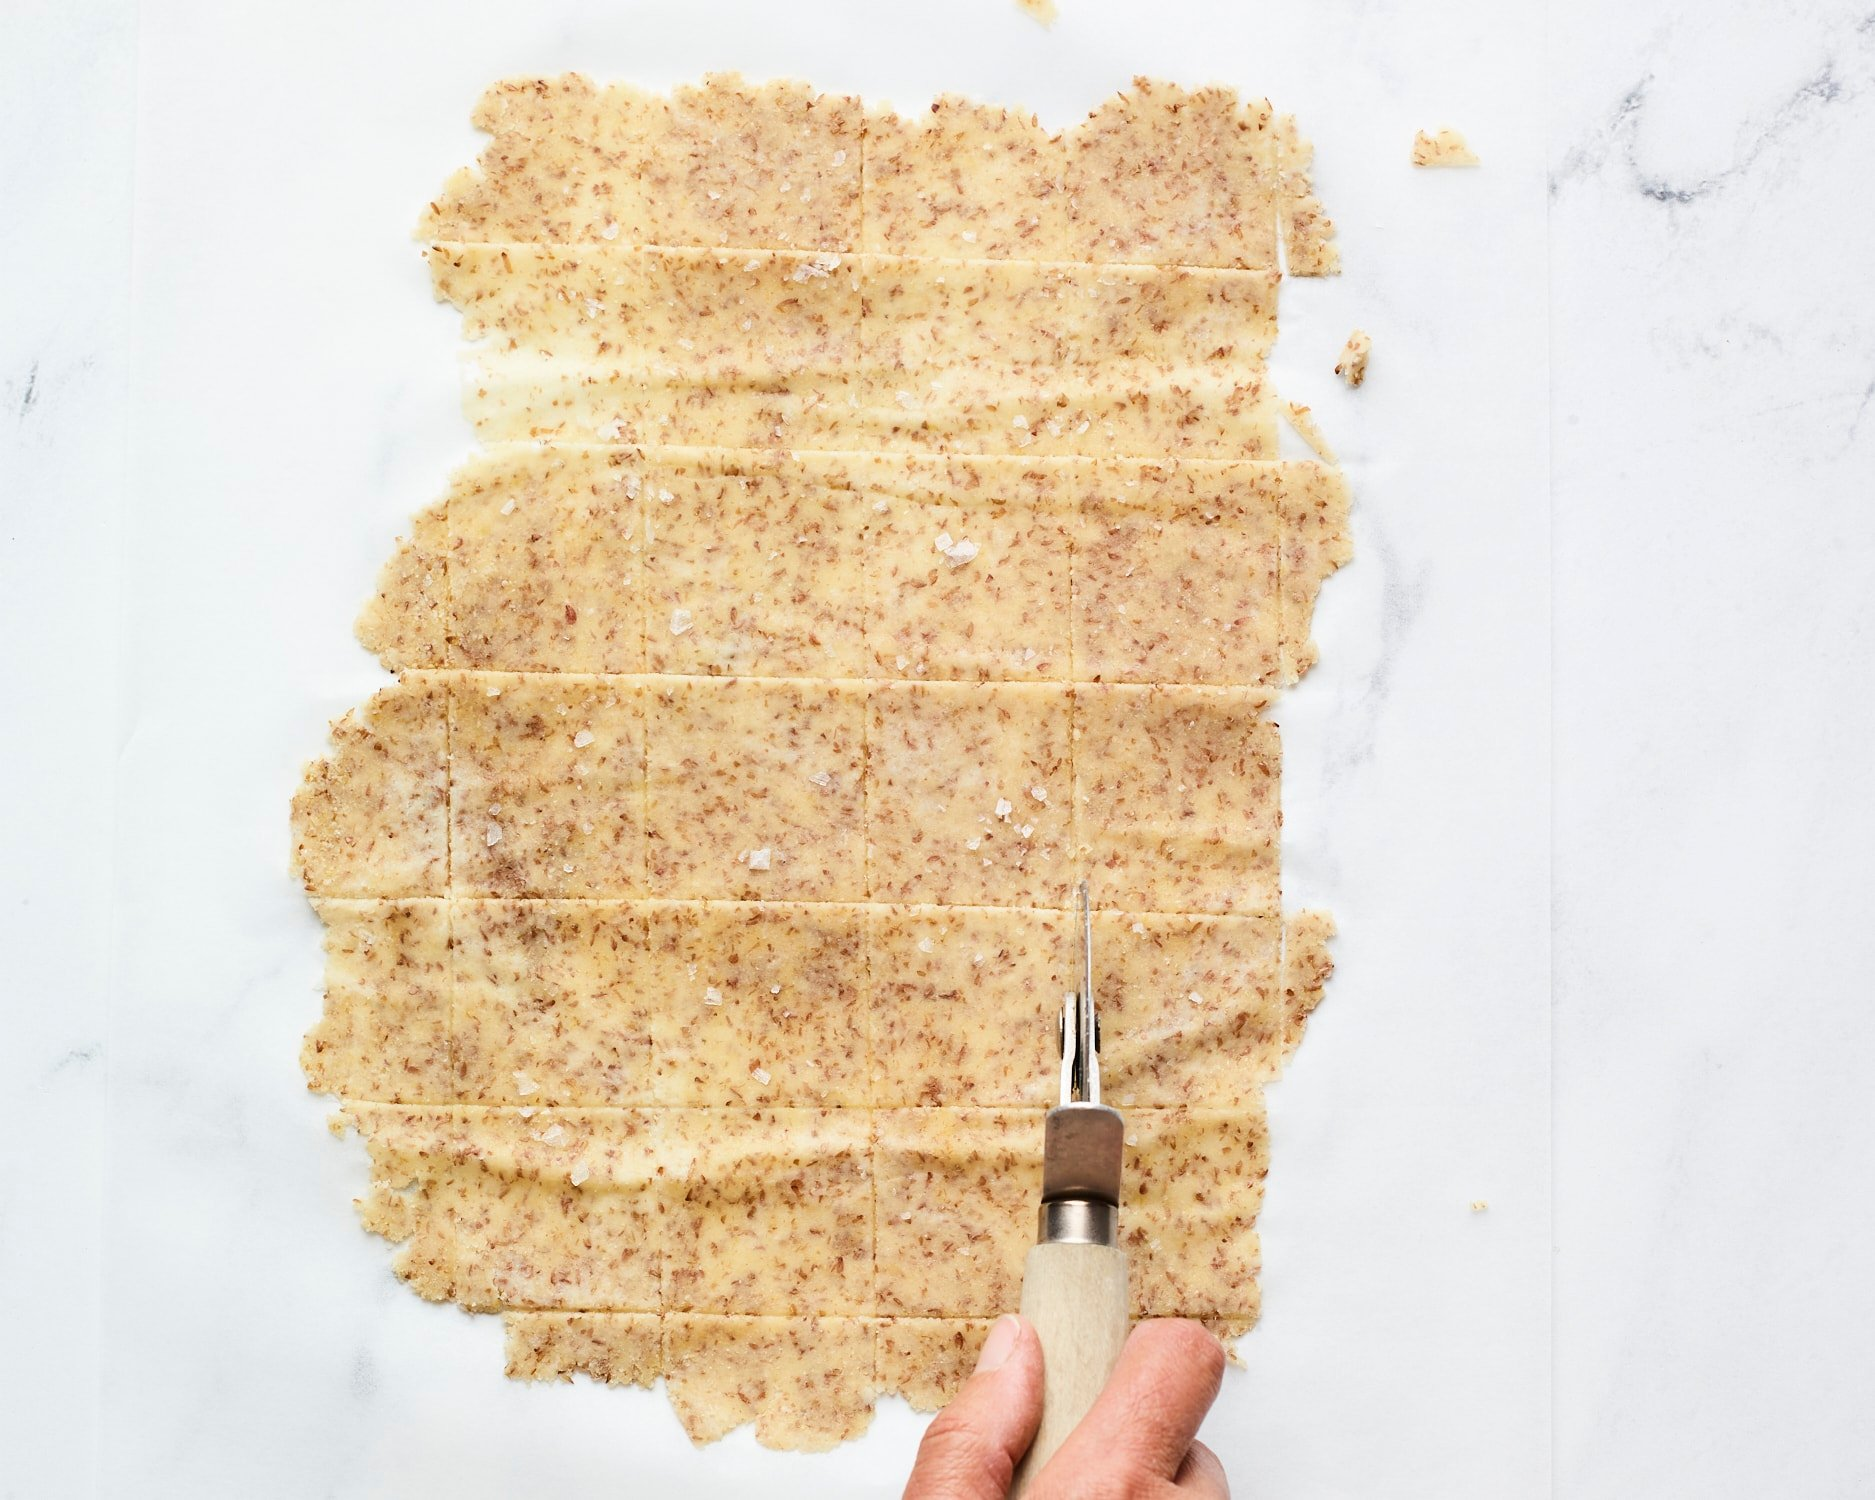 Pizza cutter slicing dough into squares for almond flour crackers.